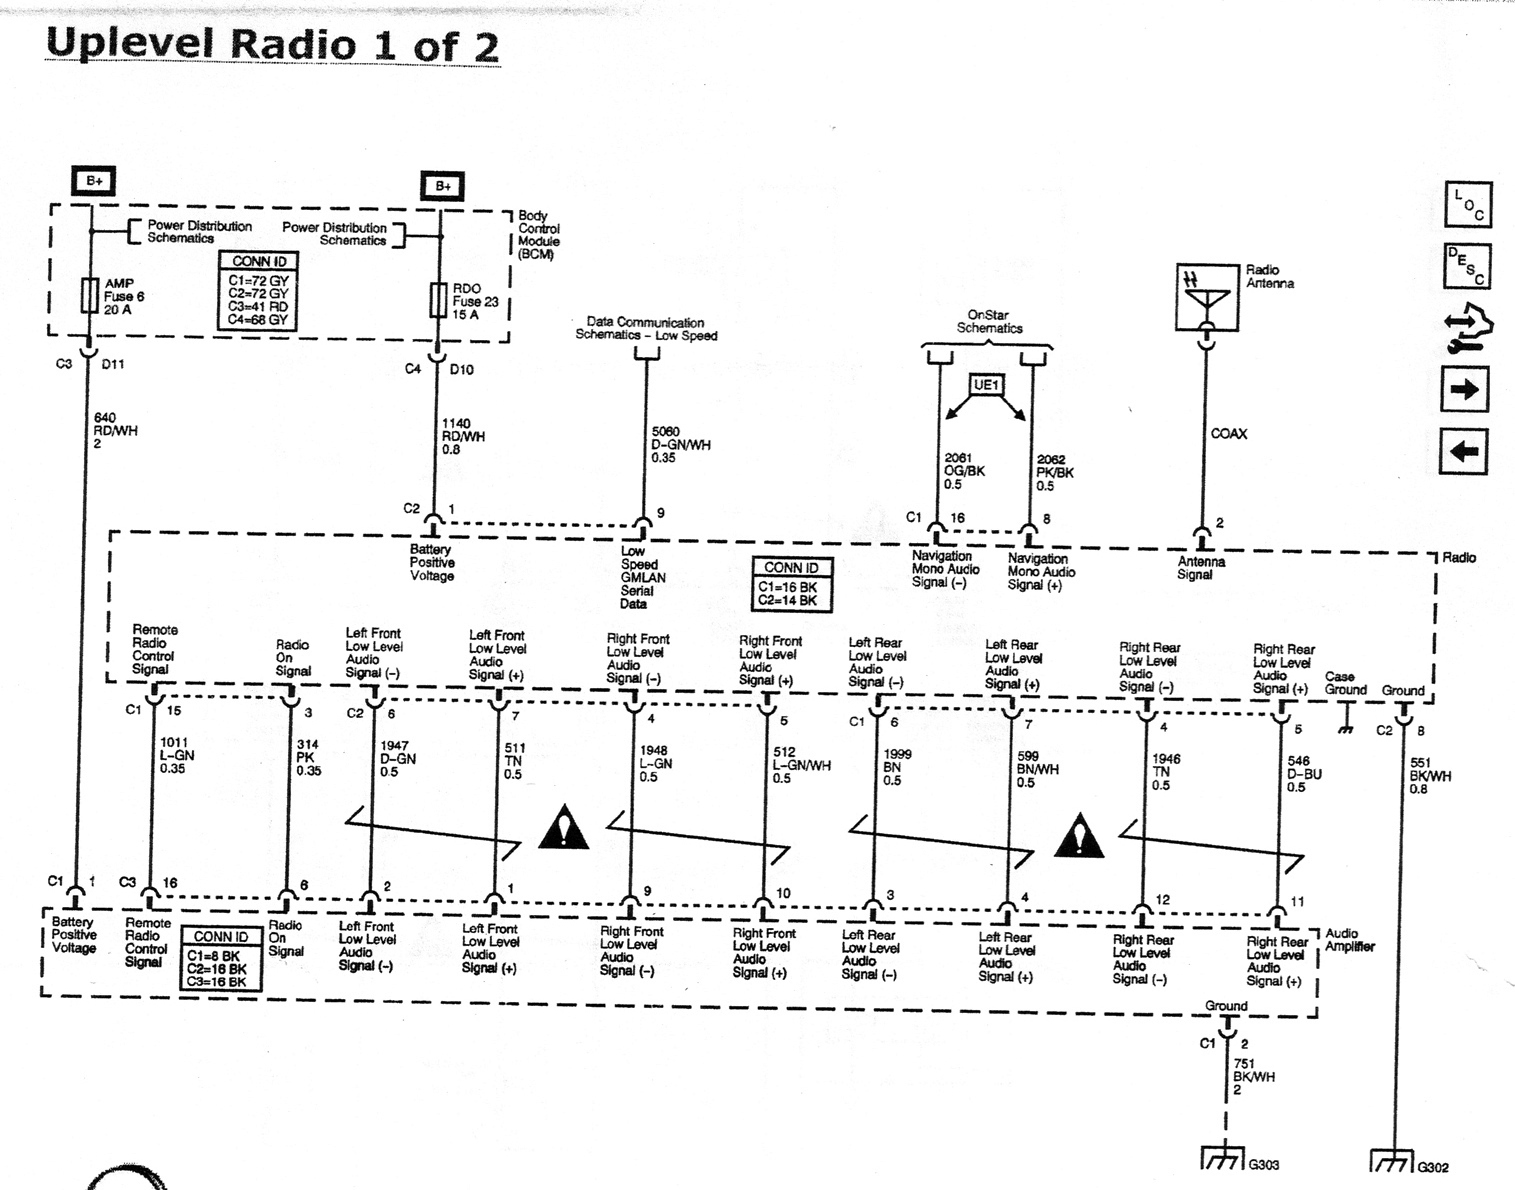 29801 monsoon amp speaker replacement monsoon_wiring_diagram_page_1 volkswagen monsoon wiring diagram wiring diagram simonand firebird monsoon wiring diagram at soozxer.org